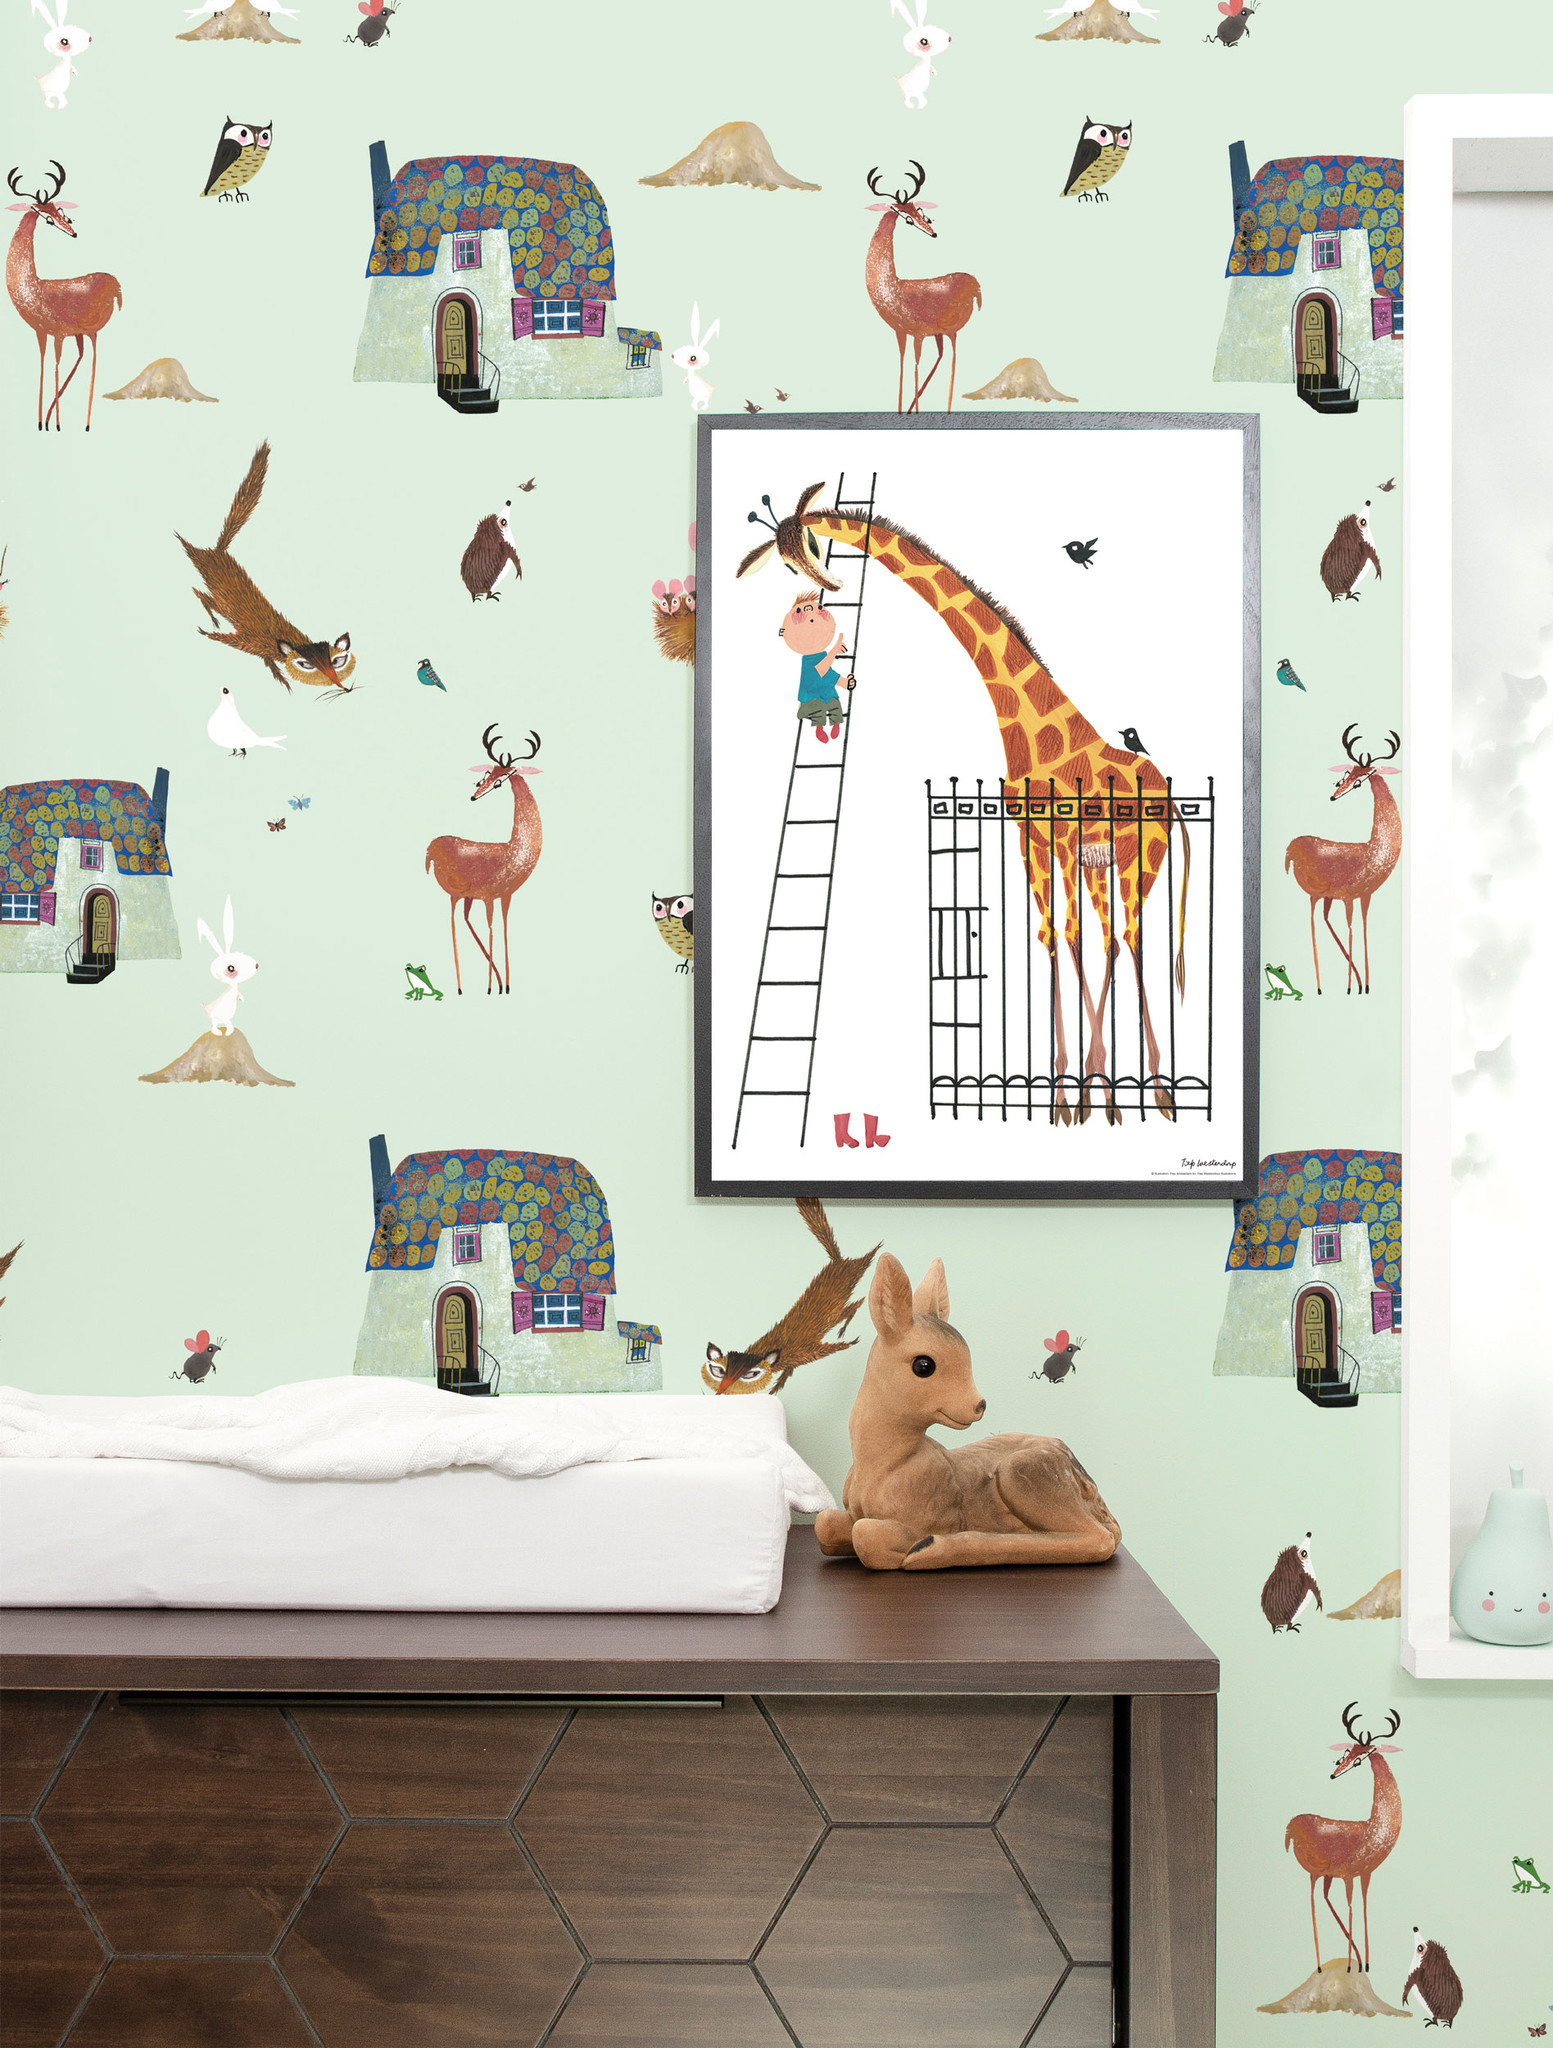 Behang Kinderkamer Jungle.Behang Muurstickers En Prints Op Hout Kek Amsterdam Kek Amsterdam